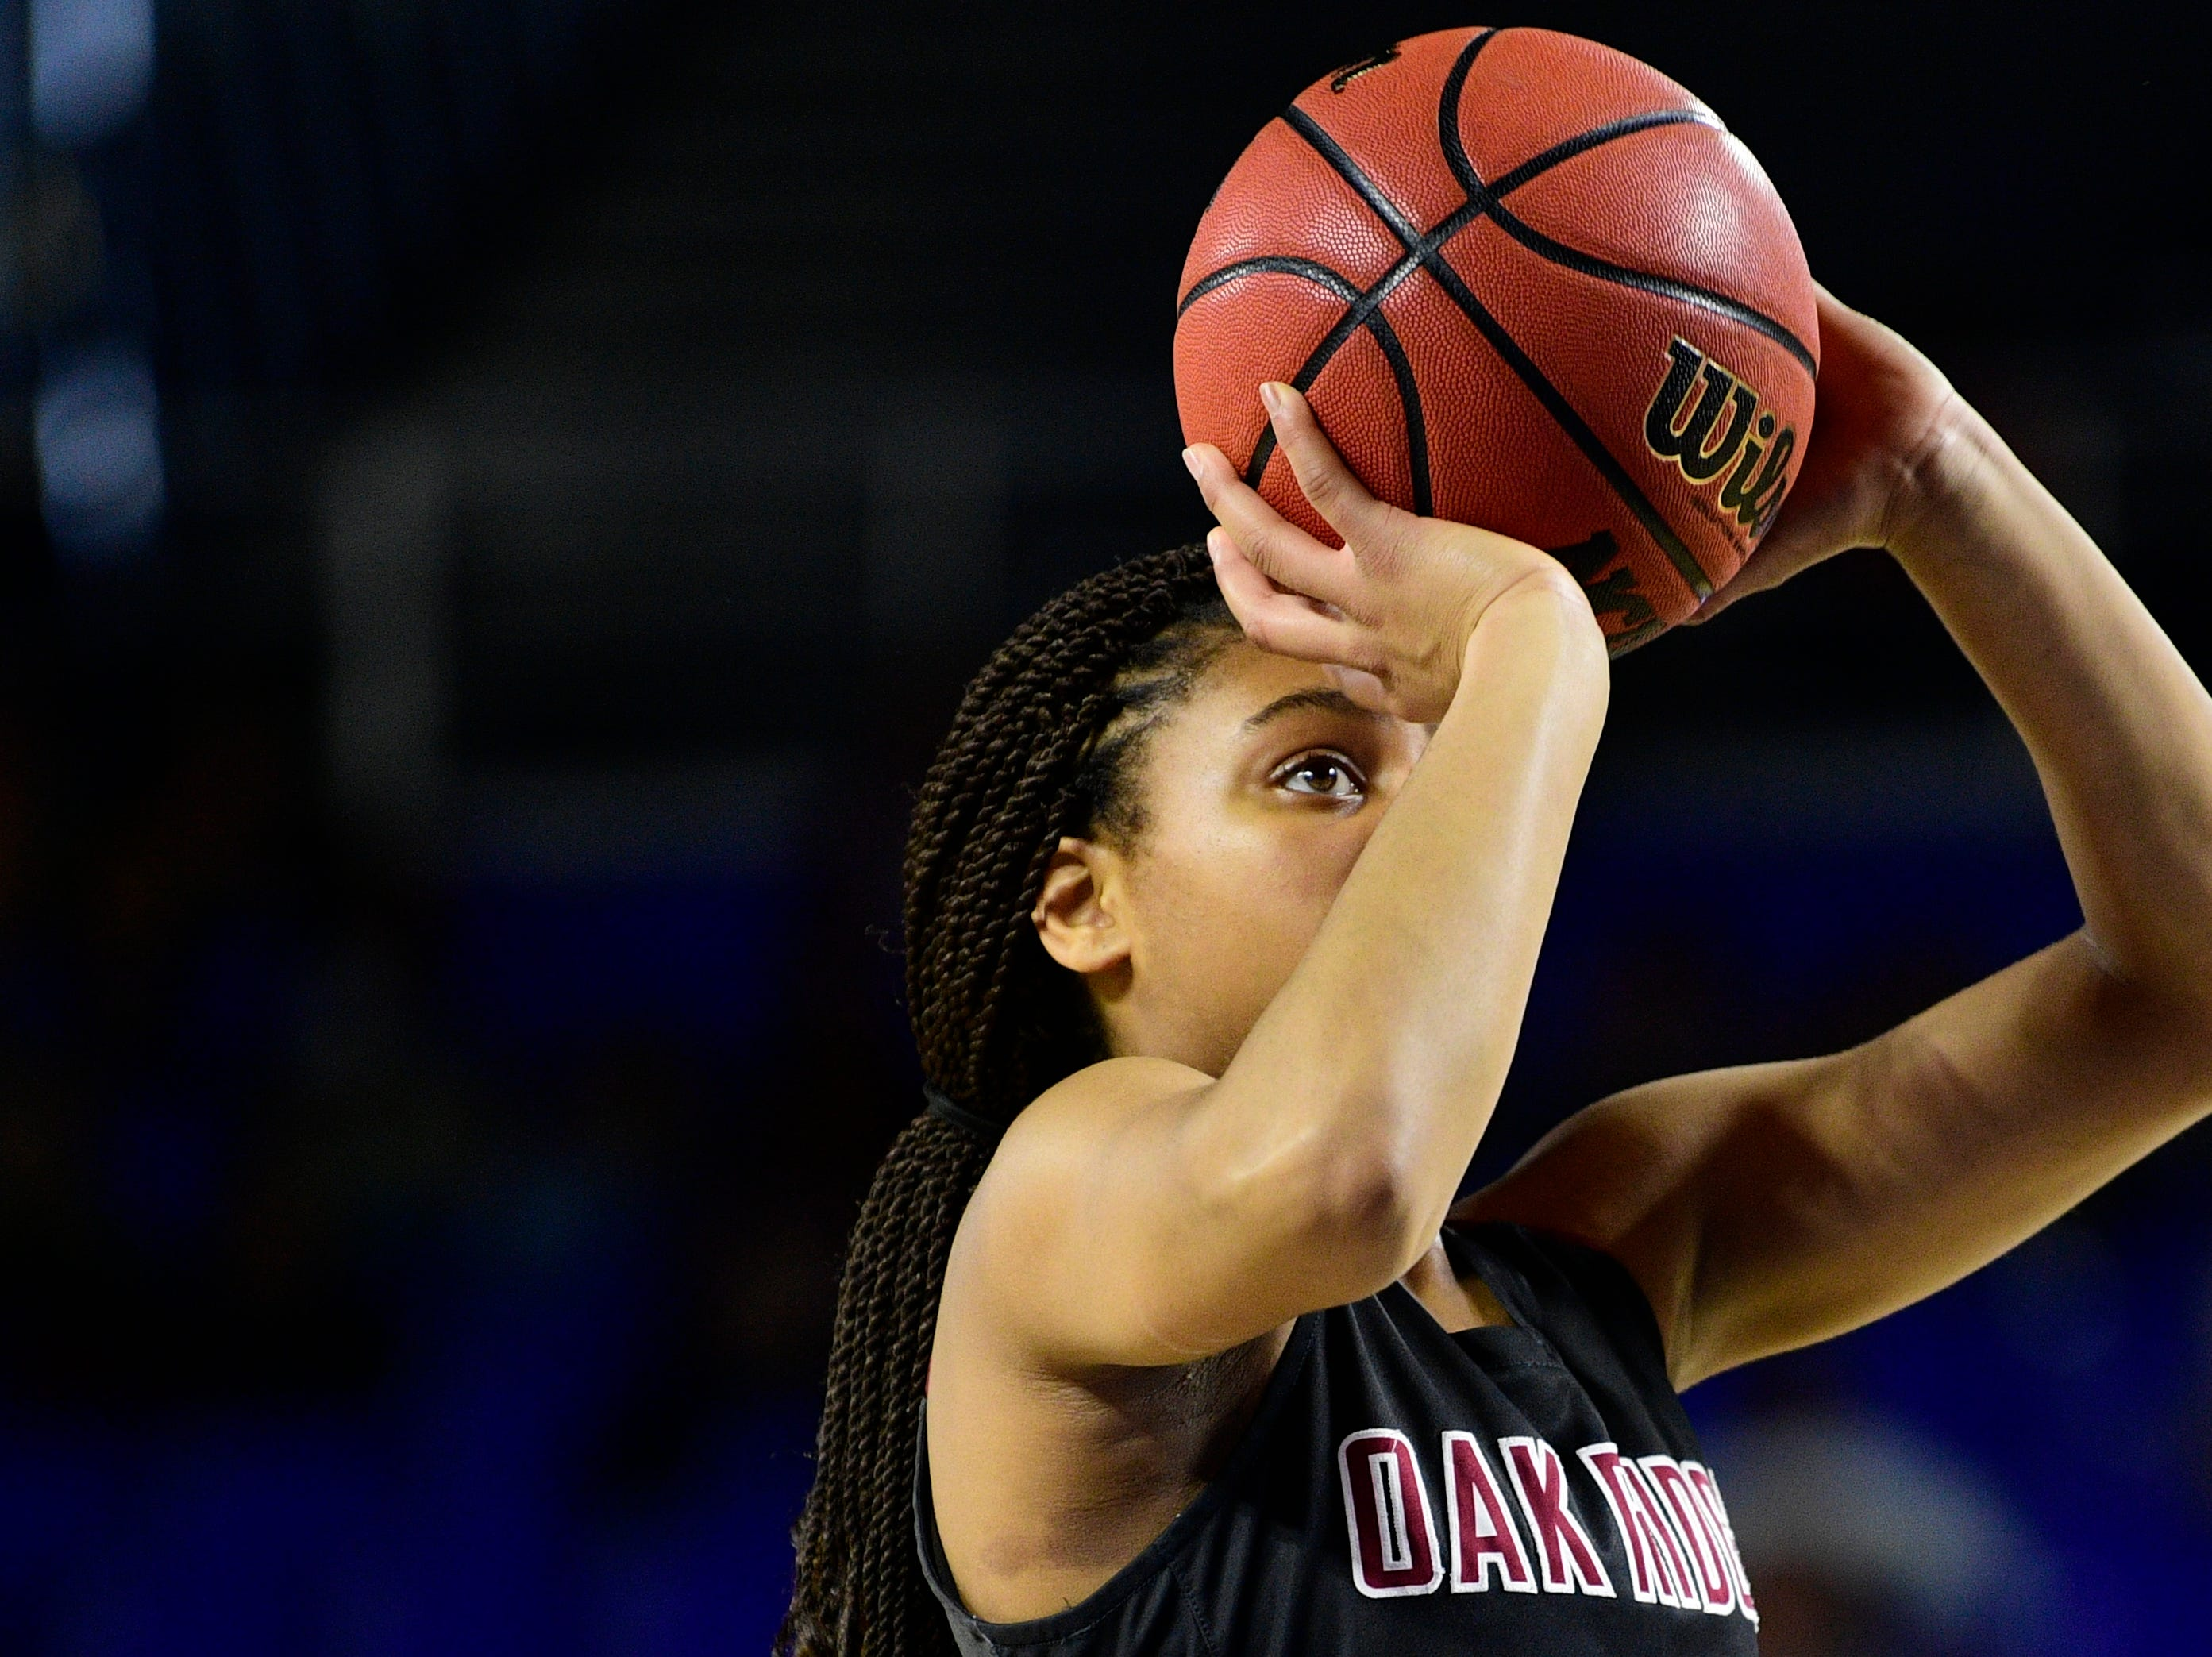 Oak Ridge's Jada Guinn (24) shoots the ball during a game between Oak Ridge and Bradley Central at the TSSAA girls state tournament at the Murphy Center in Murfreesboro, Tennessee on Friday, March 8, 2019.